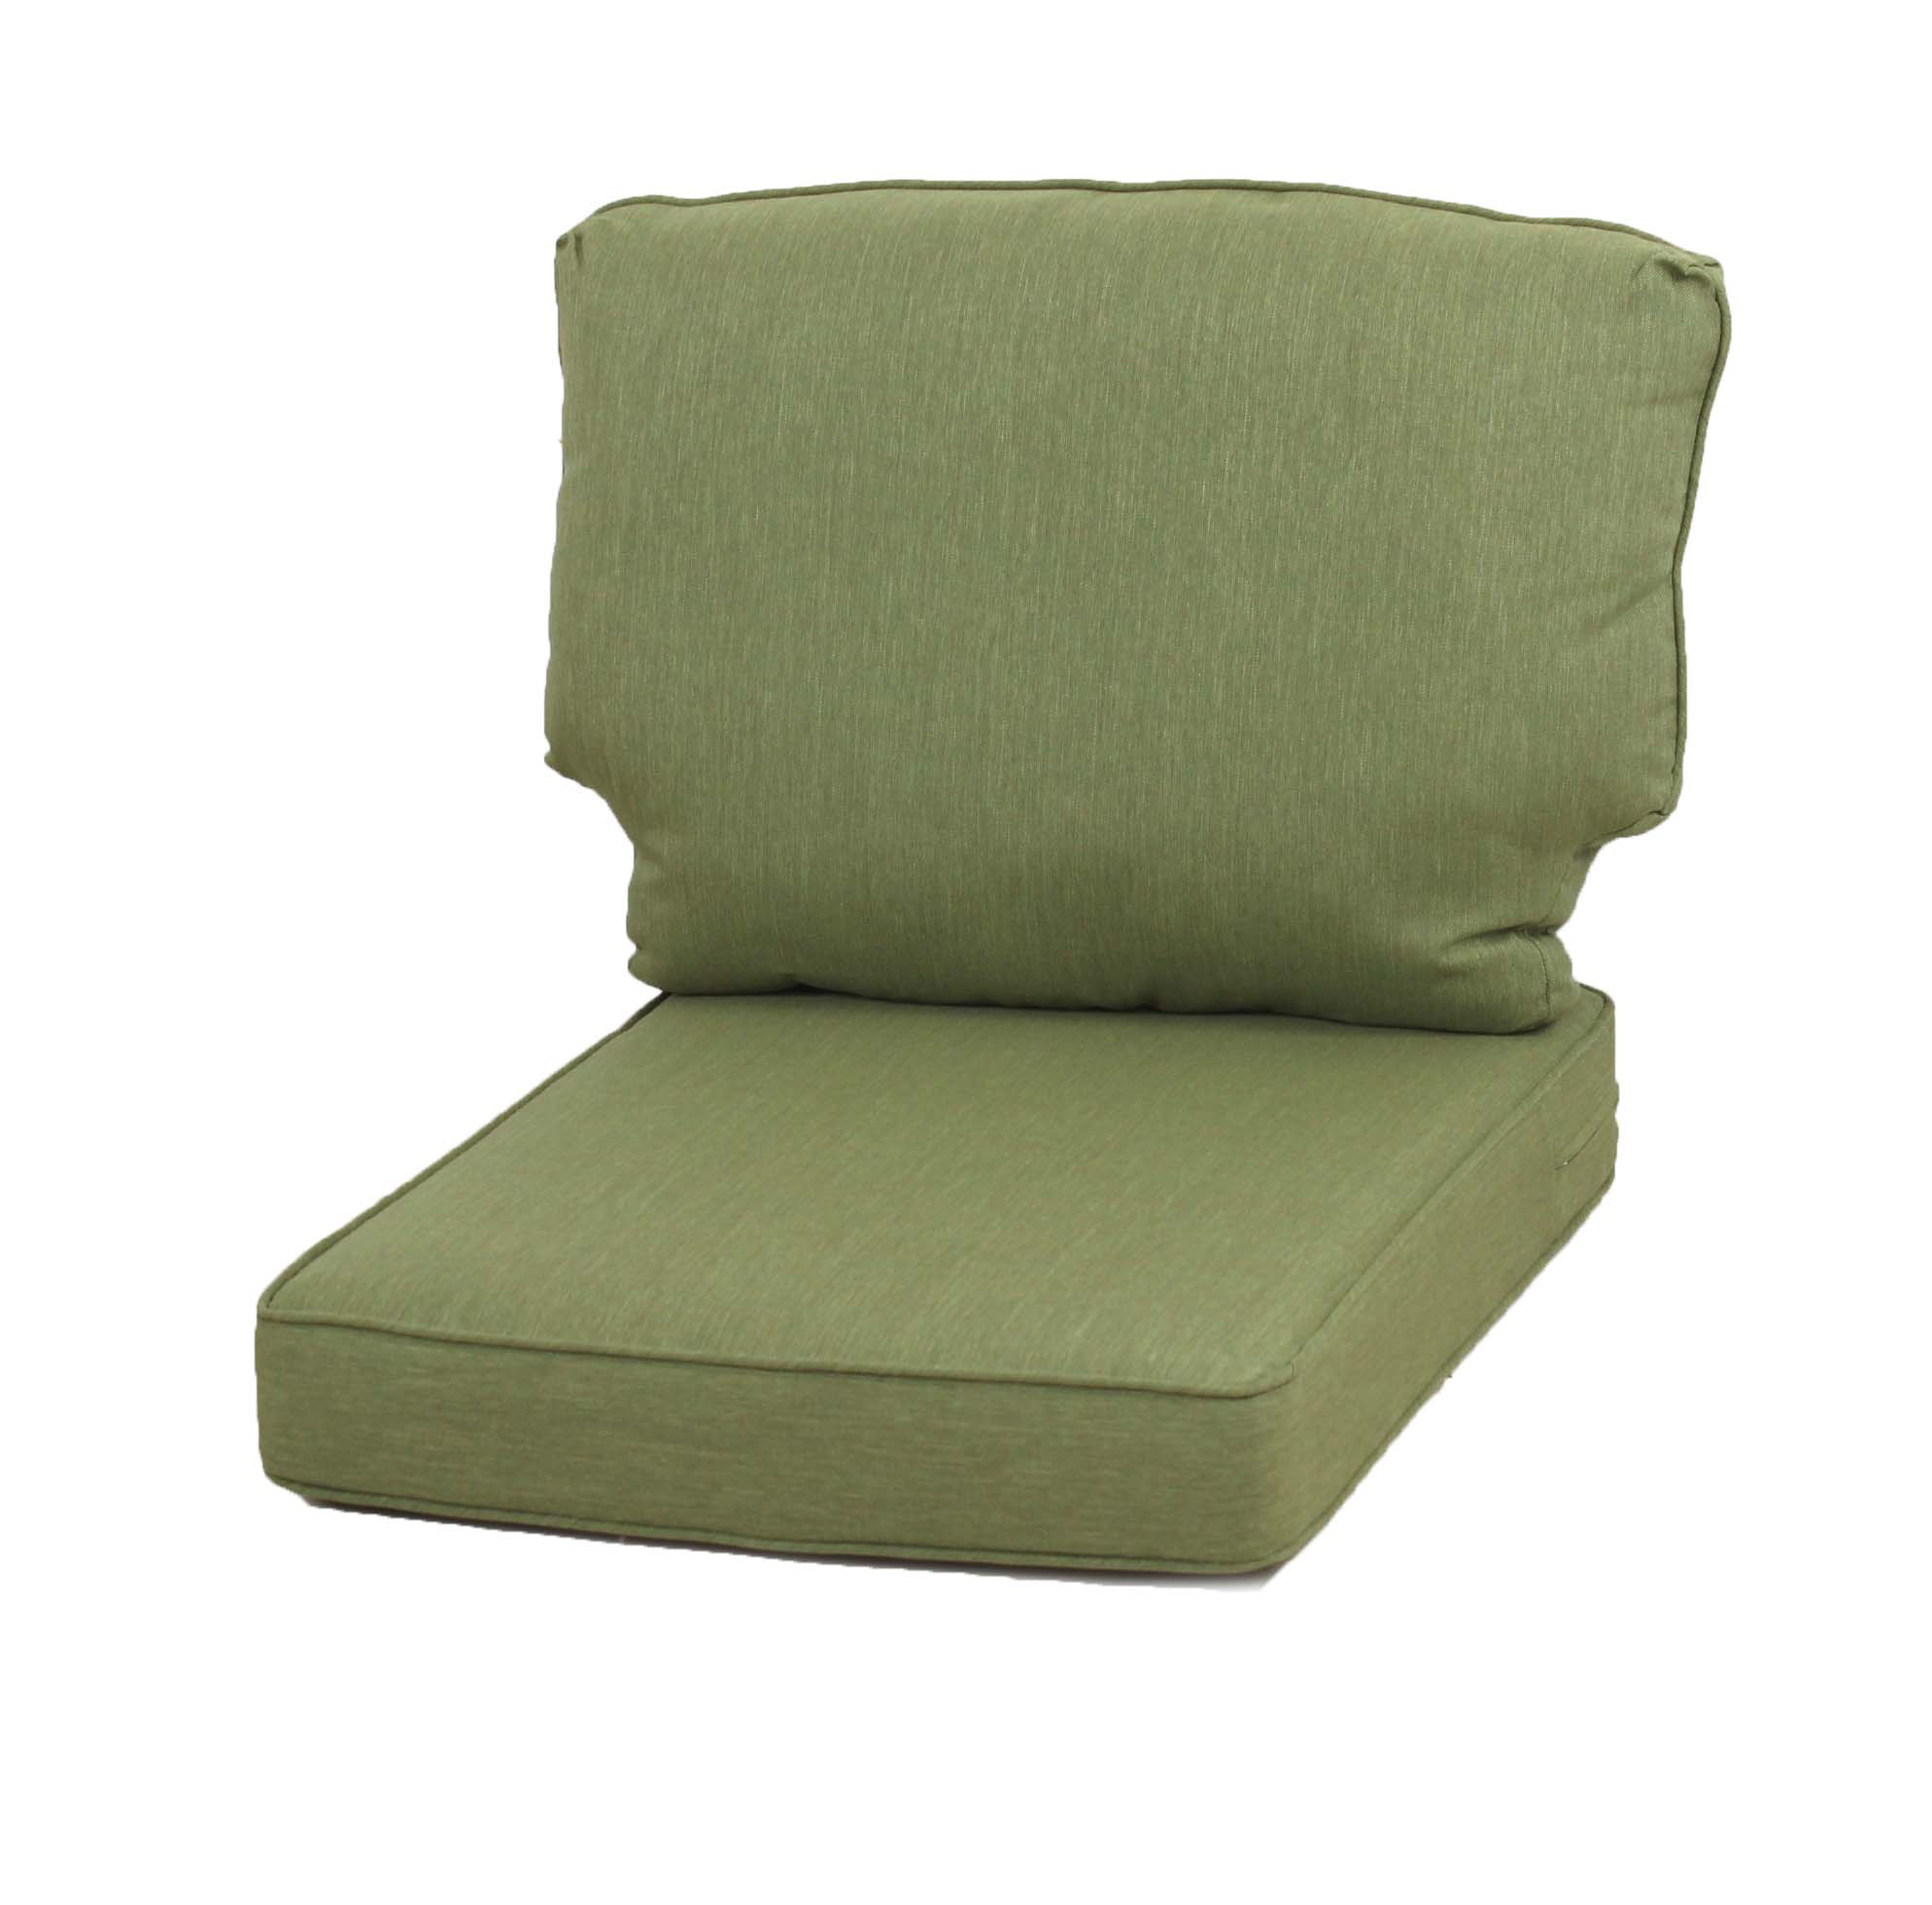 Rocker Glider Cushions | Replacement Glider Cushions | Storkcraft Glider Replacement Cushions